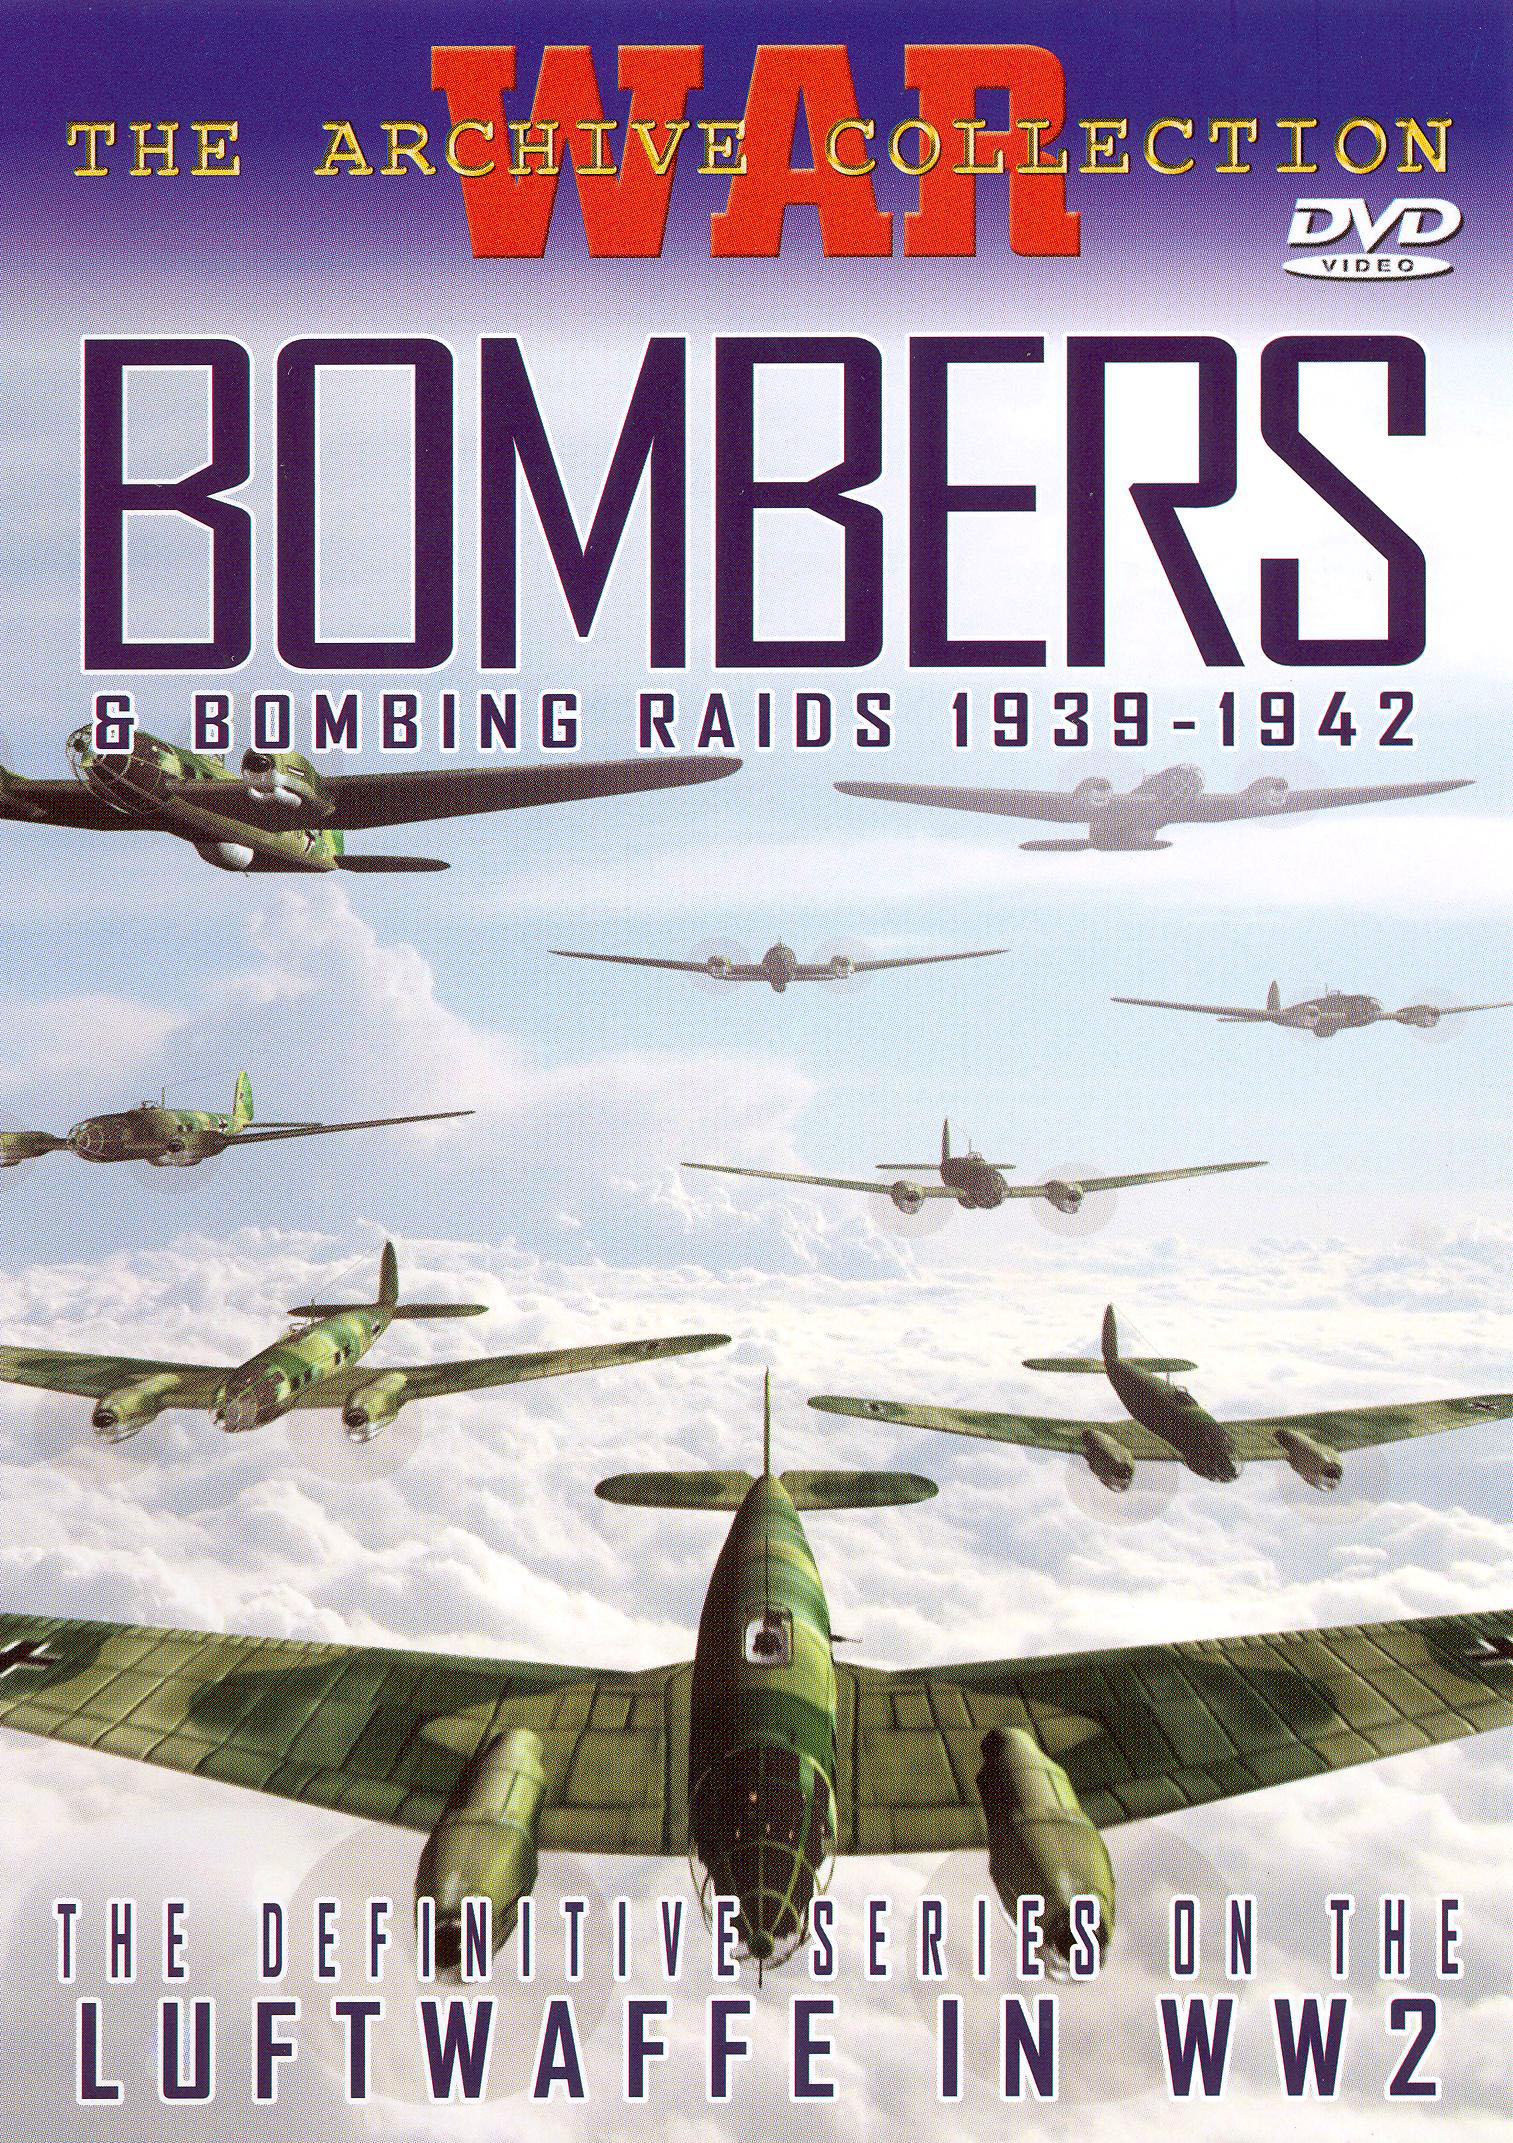 Bombers and Bombing Raids 1939-1942